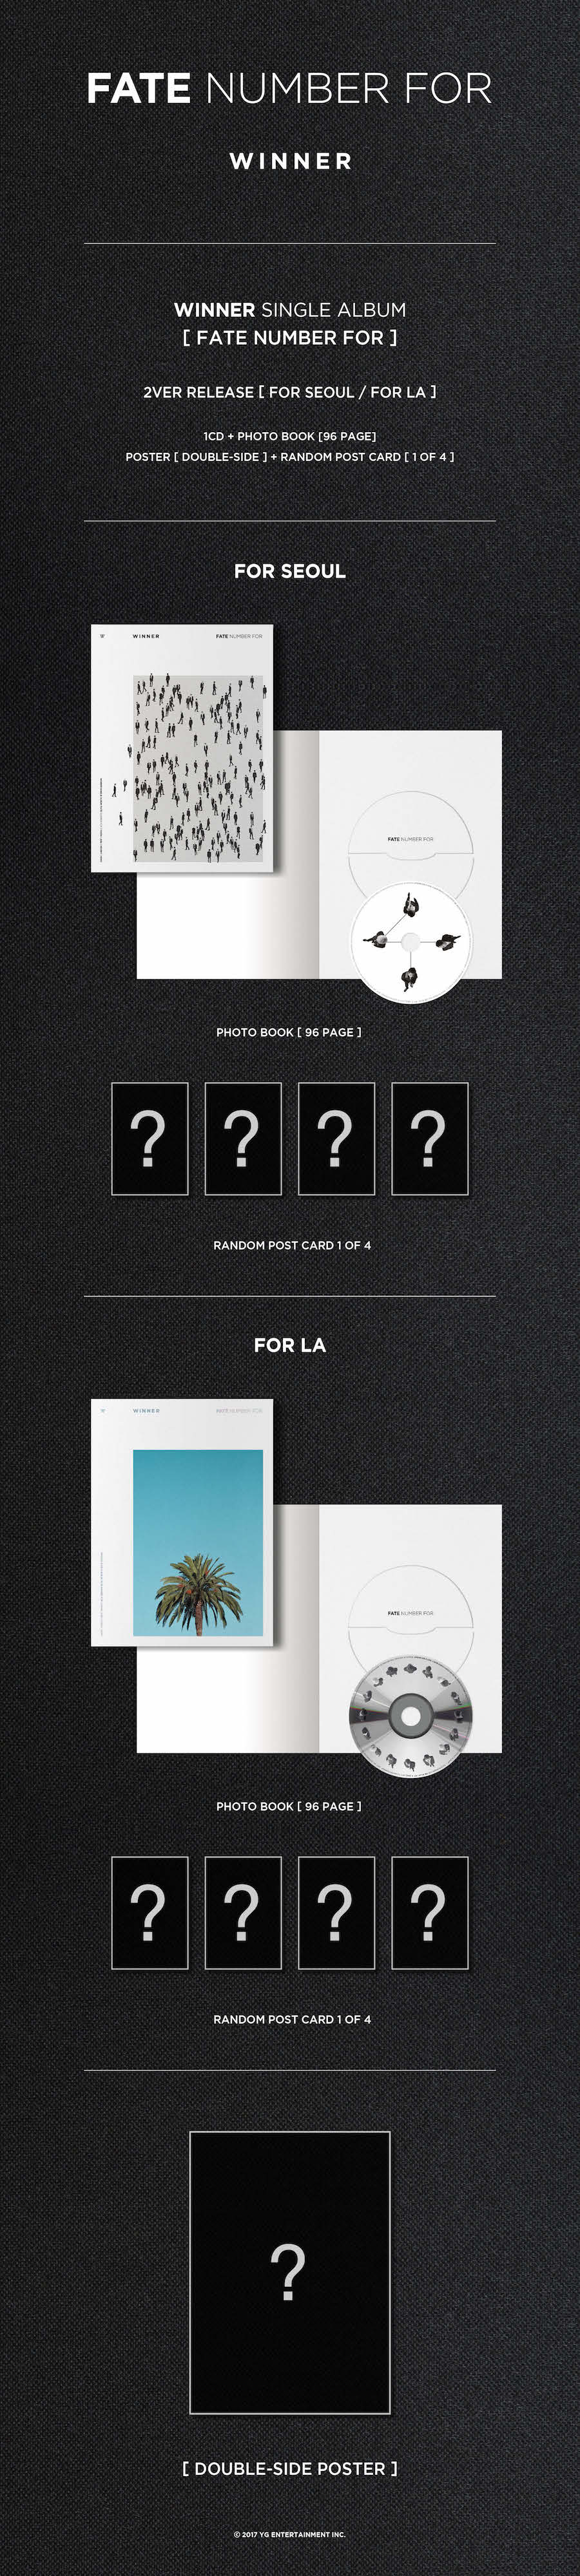 WINNER Fate Number For At SOKOLLAB with versions In Seoul and In LA